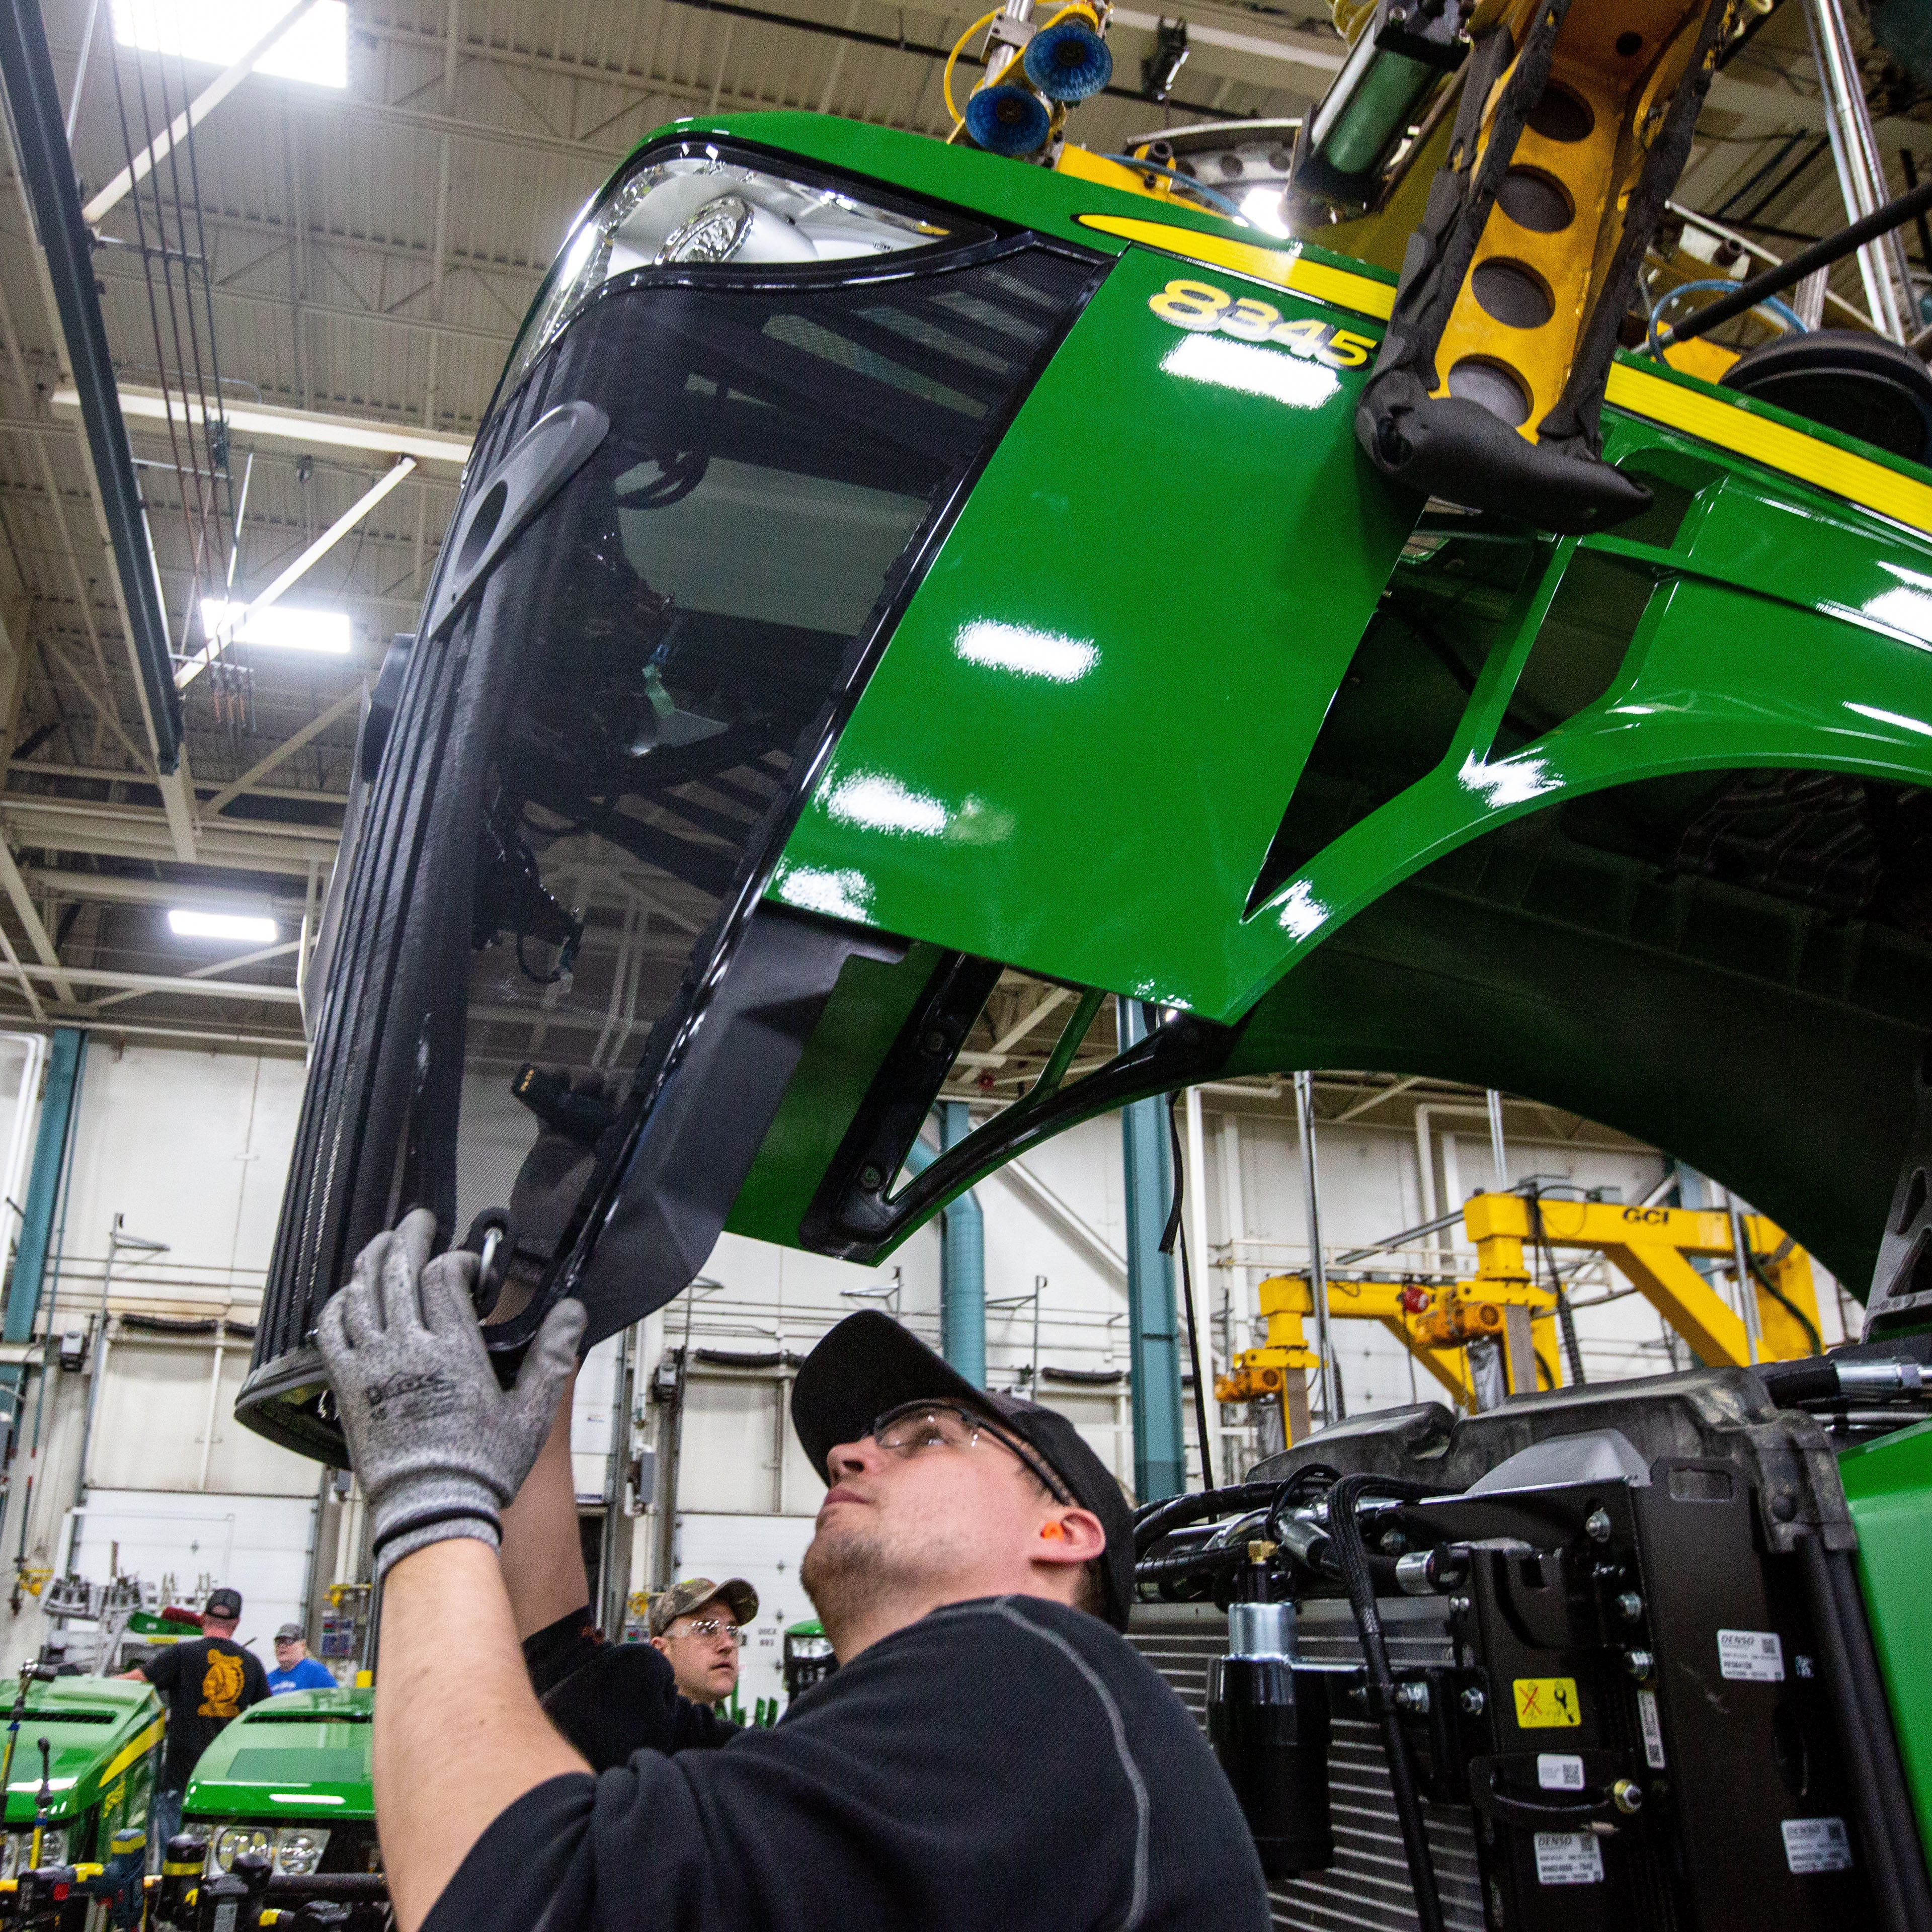 Like Iowa farmers, John Deere tries to power through ag industry downturn